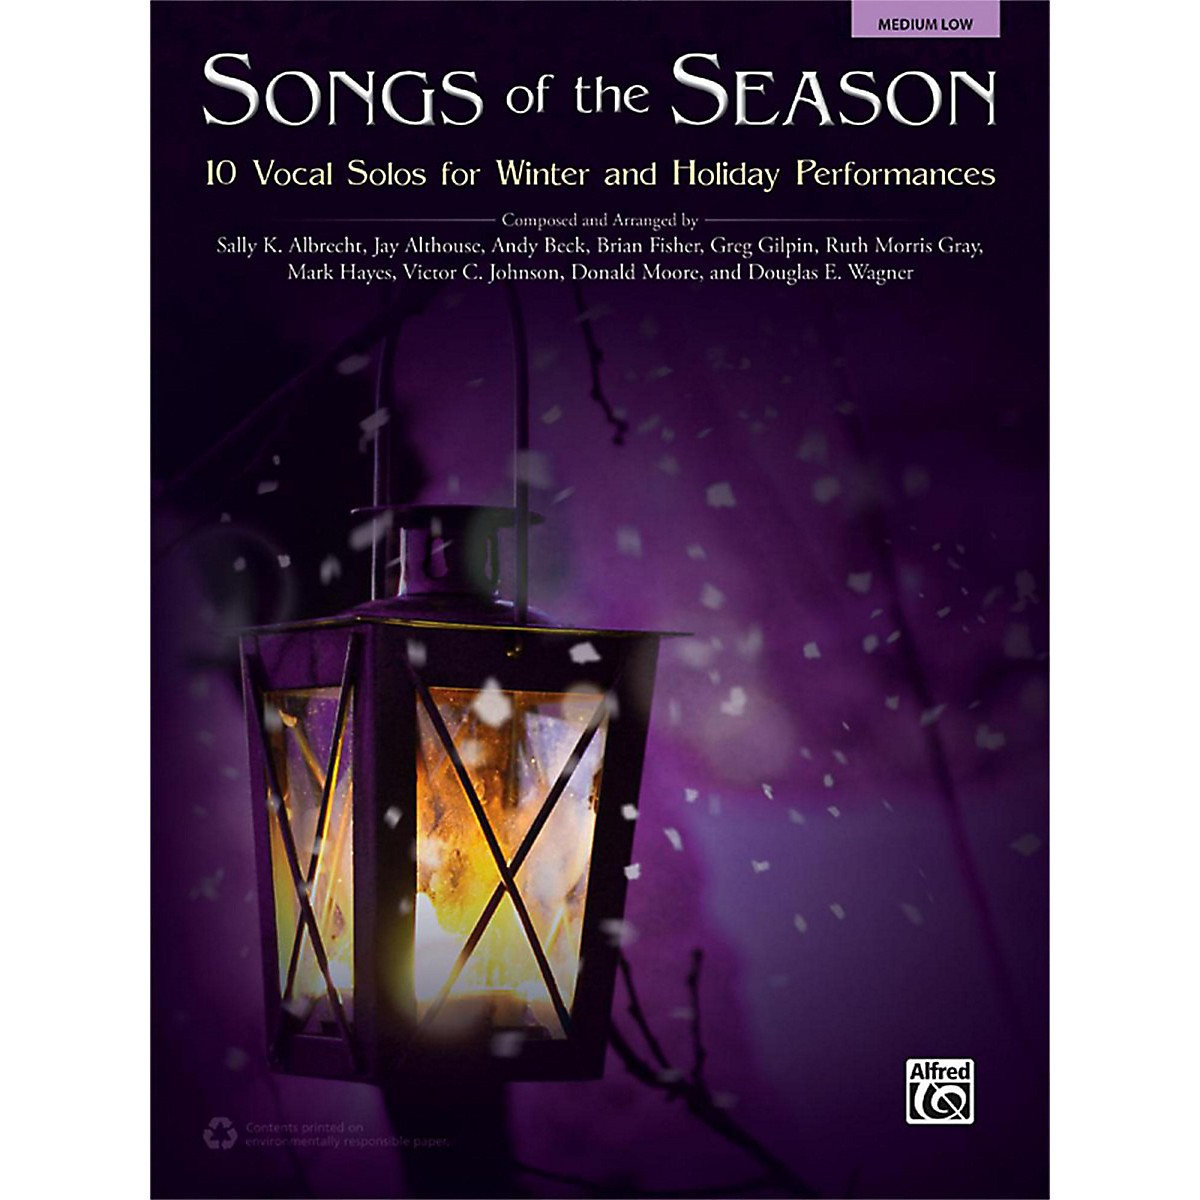 Alfred Songs of the Season Medium Low Book